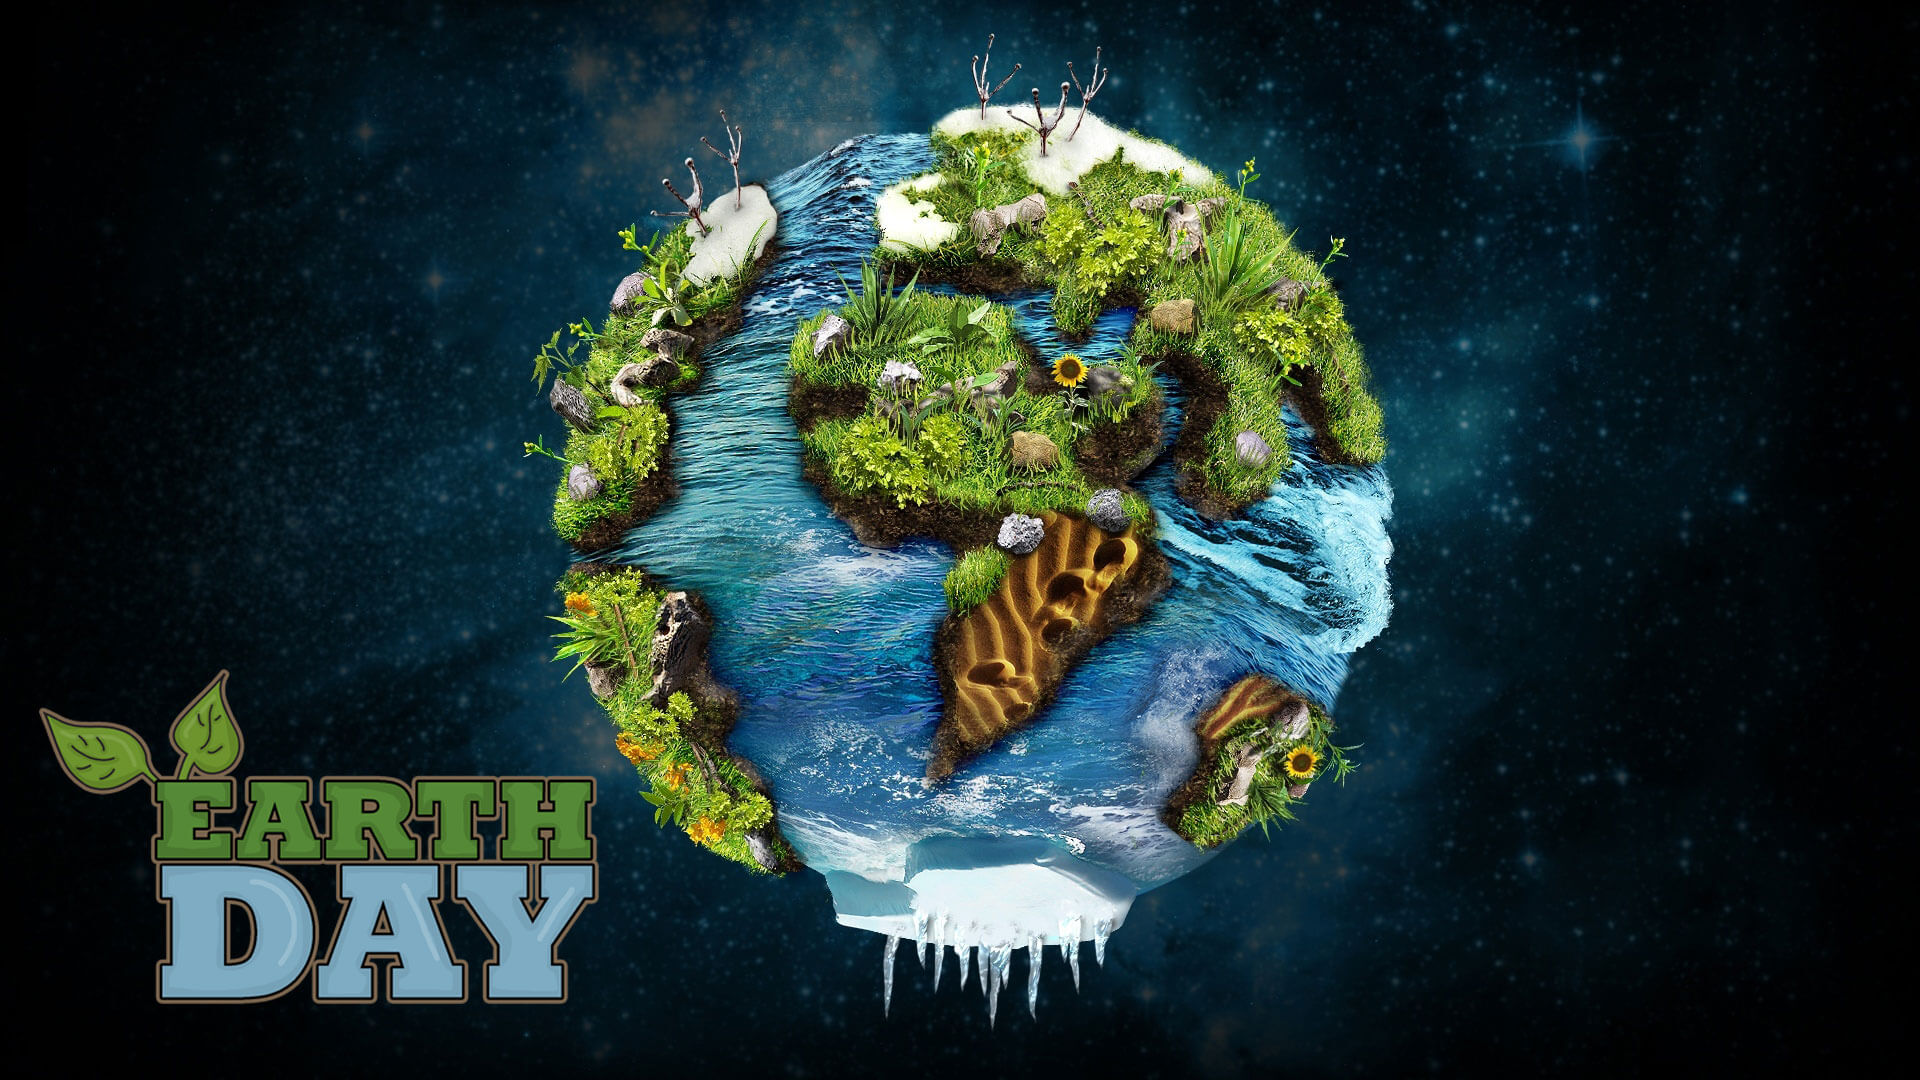 happy earth day cool green nature 3d hd wallpaper